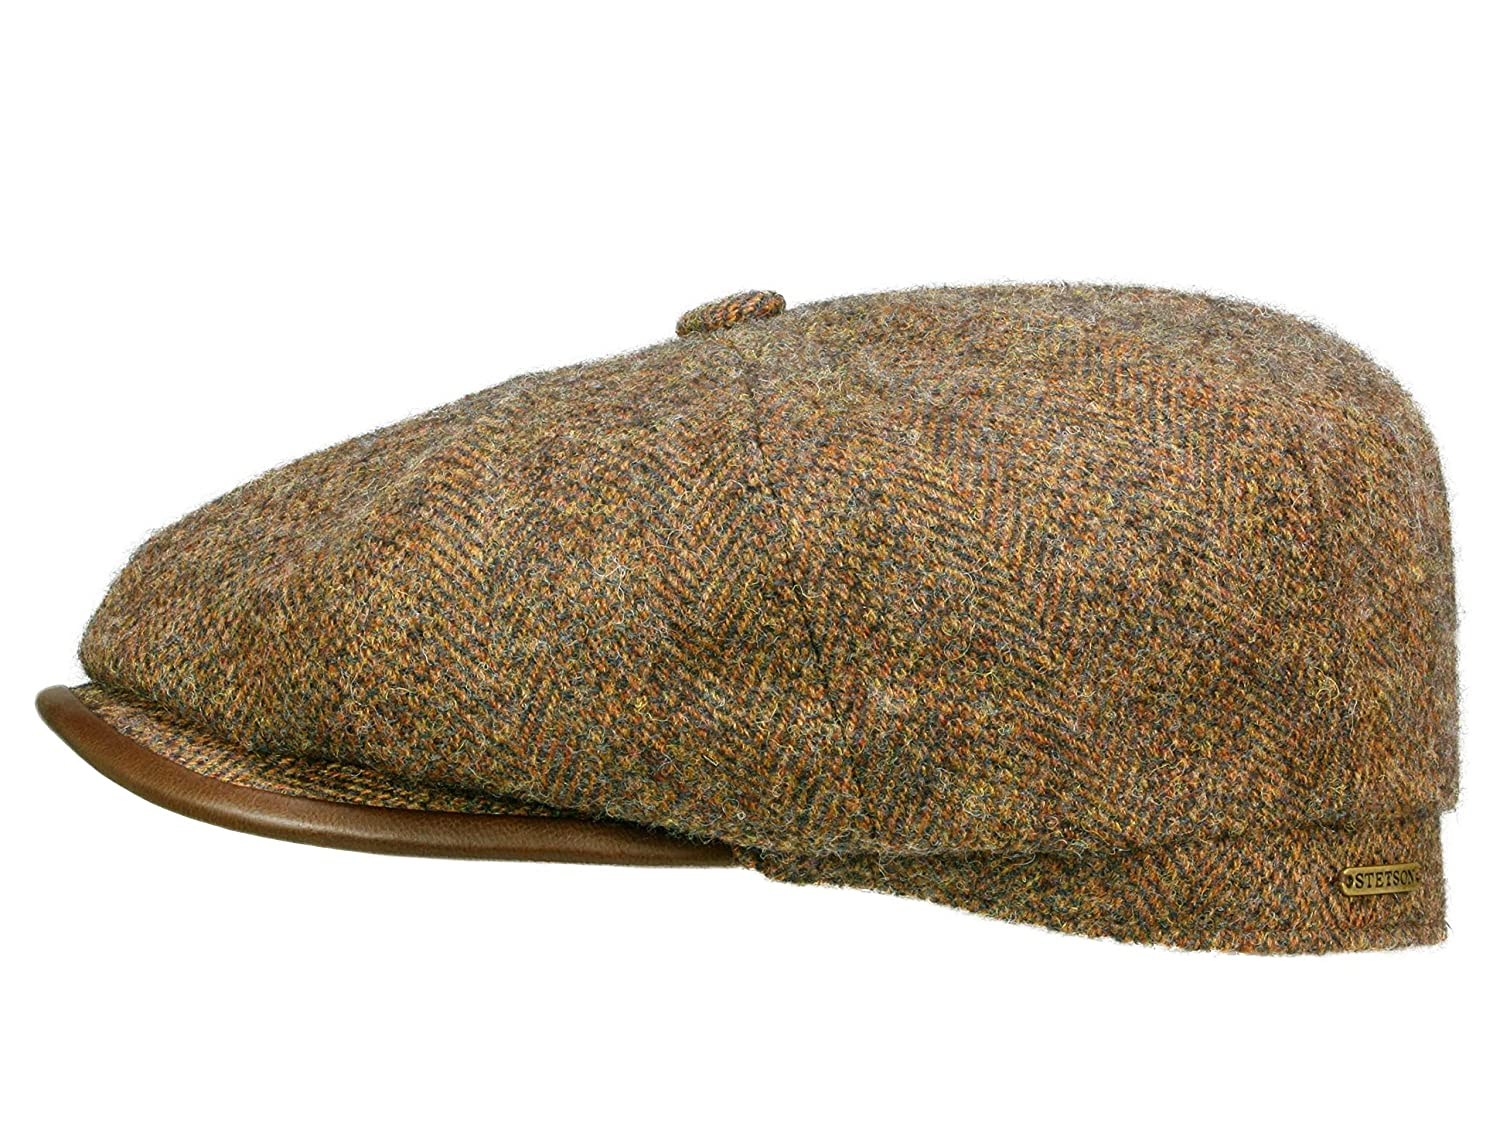 50ff12cdc51299 Stetson Hats Hatteras Virgin Wool Newsboy Cap With Earlaps - Brown 63:  Amazon.co.uk: Clothing